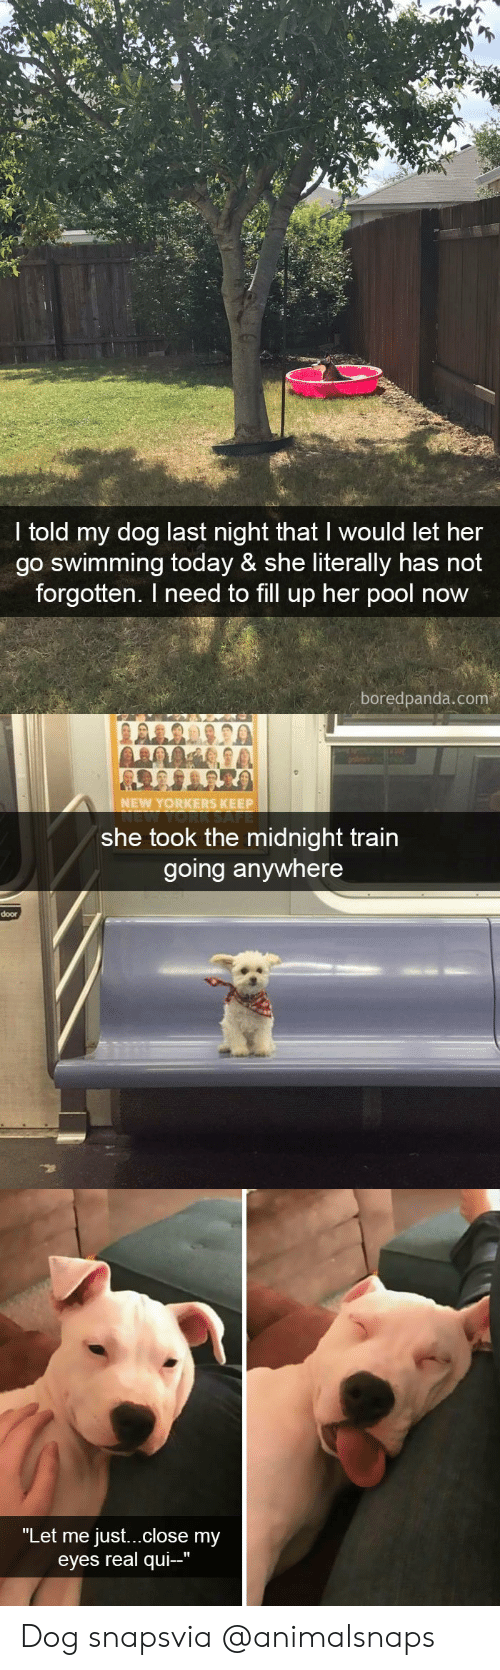 """Target, Tumblr, and Http: I told my dog last night that I would let her  go swimming today & she literally has not  forgotten. I need to fill up her pool now  boredpanda.com   NEW YORKERS KEEP  she took the midnight train  going anywhere  door   """"Let me just...close my  eyes real qui-"""" Dog snapsvia @animalsnaps"""